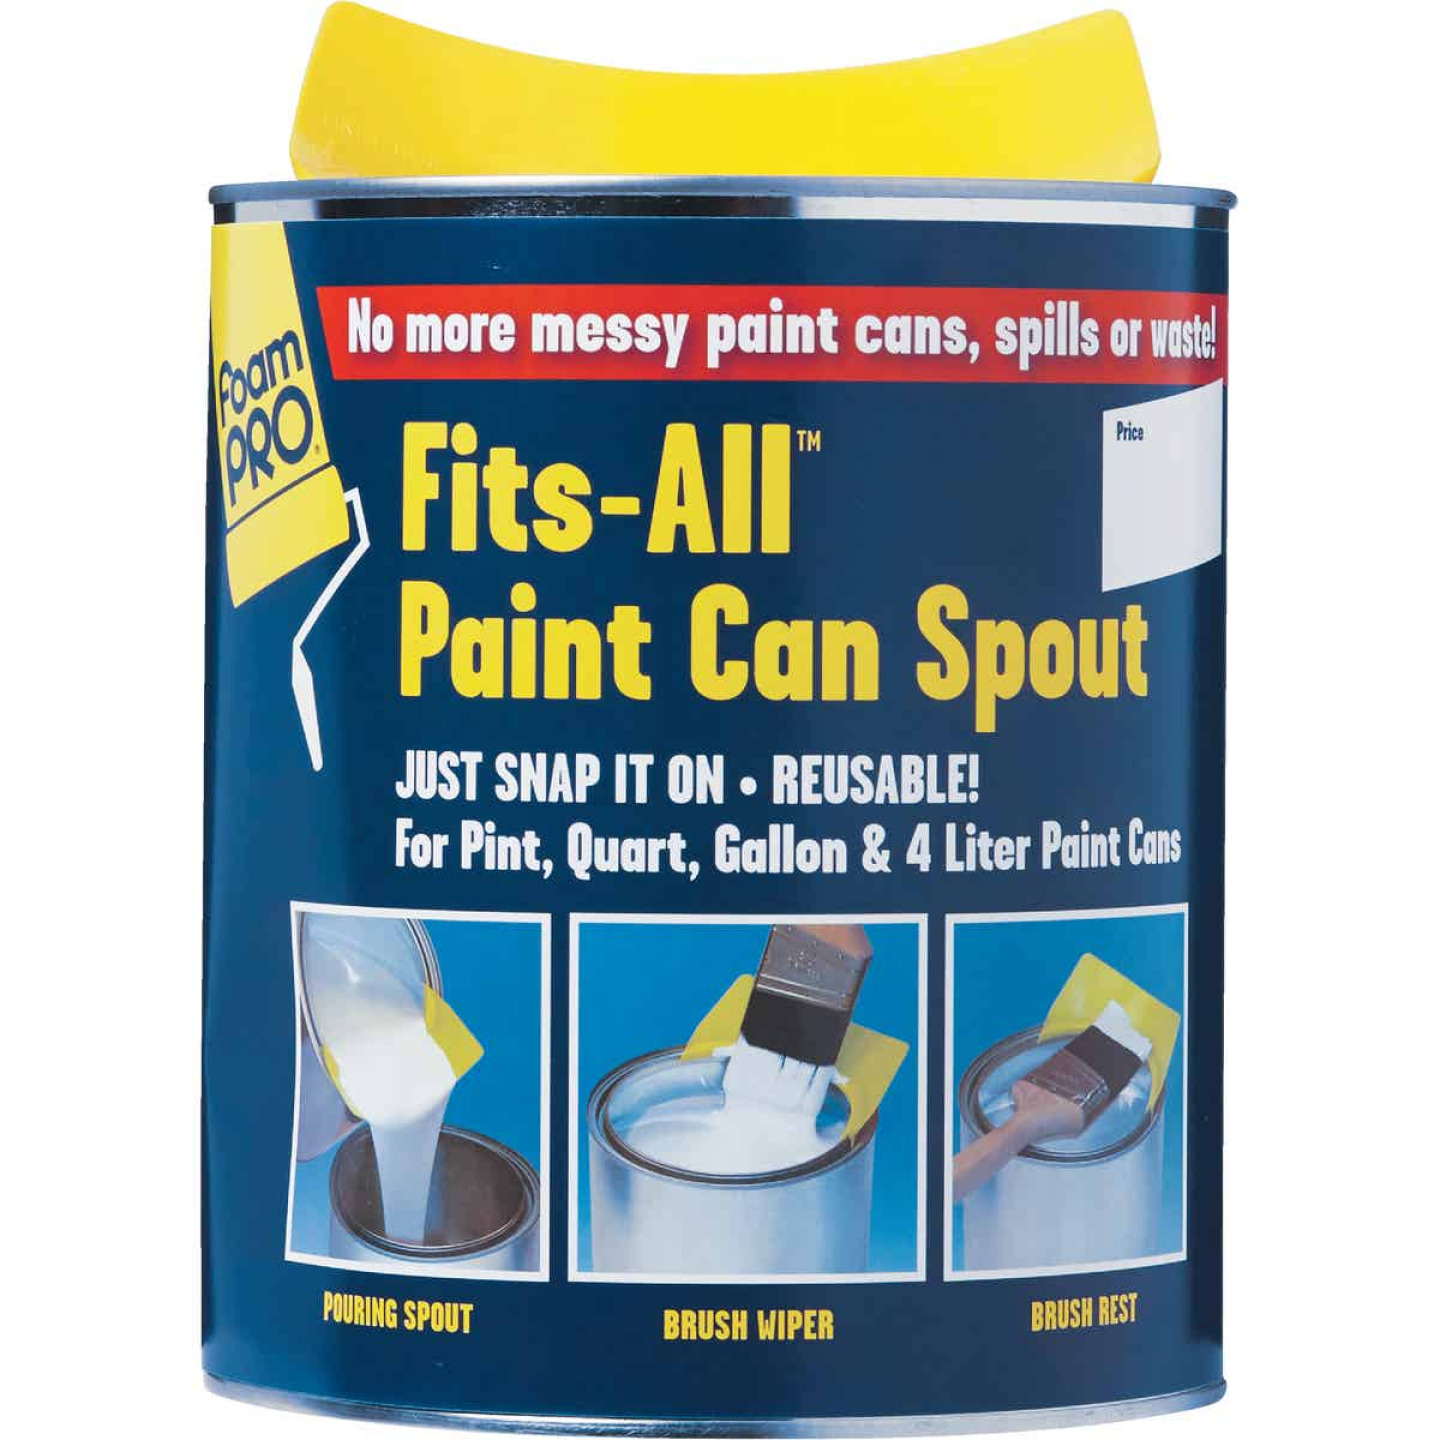 FoamPro Fits-All Snap-On Paint Can Pourer Image 2